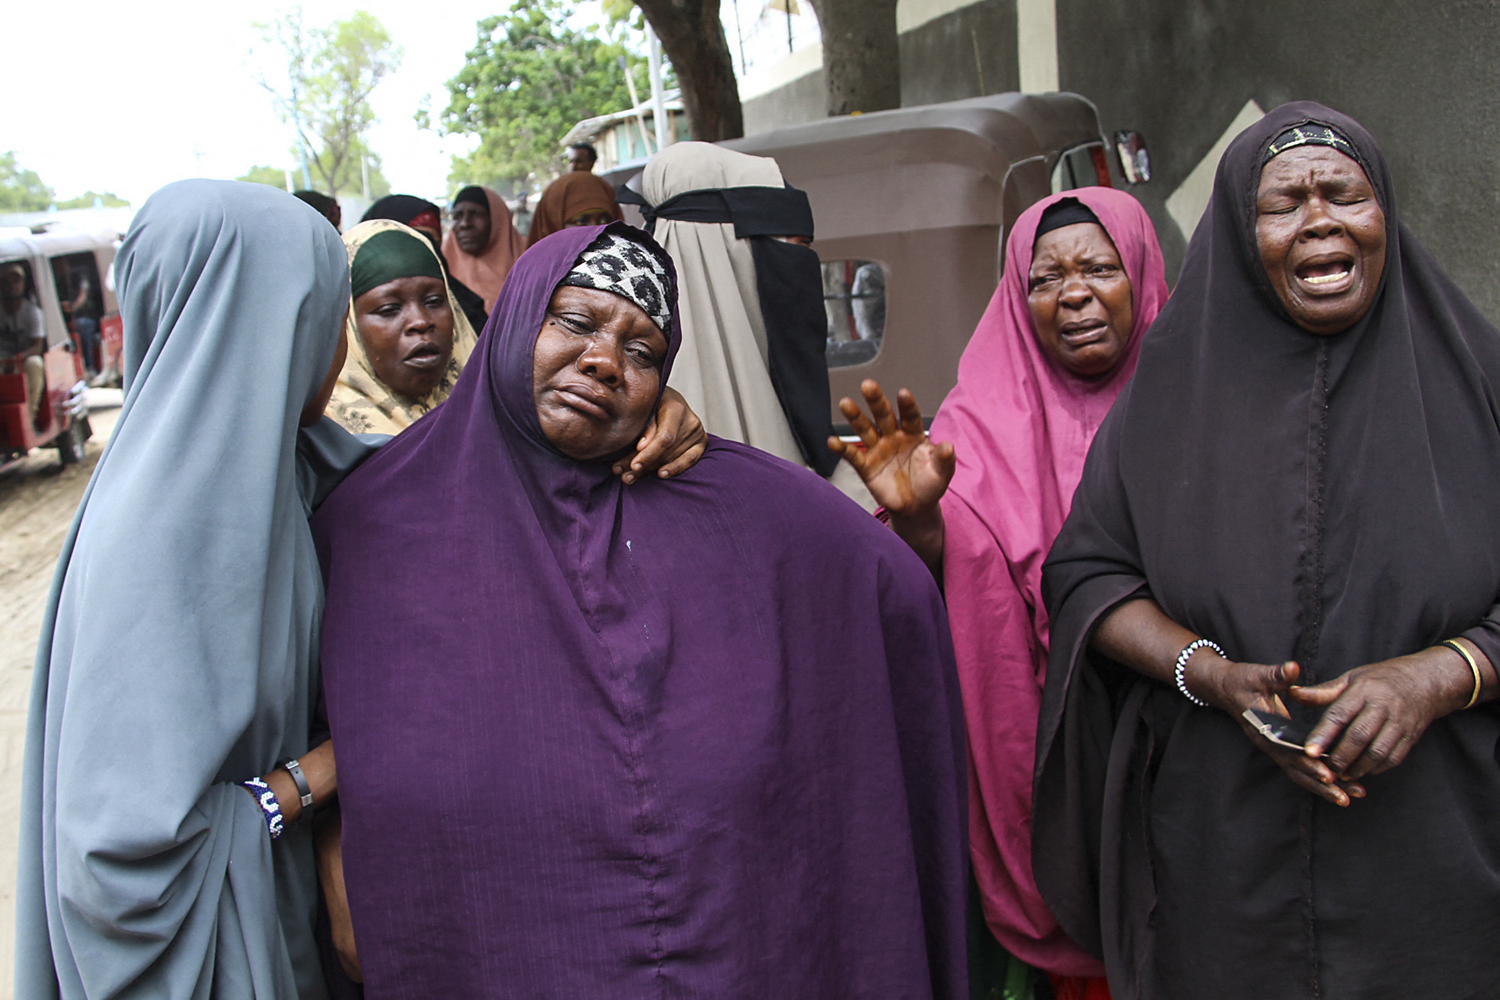 Women cry after bombing in Somalia